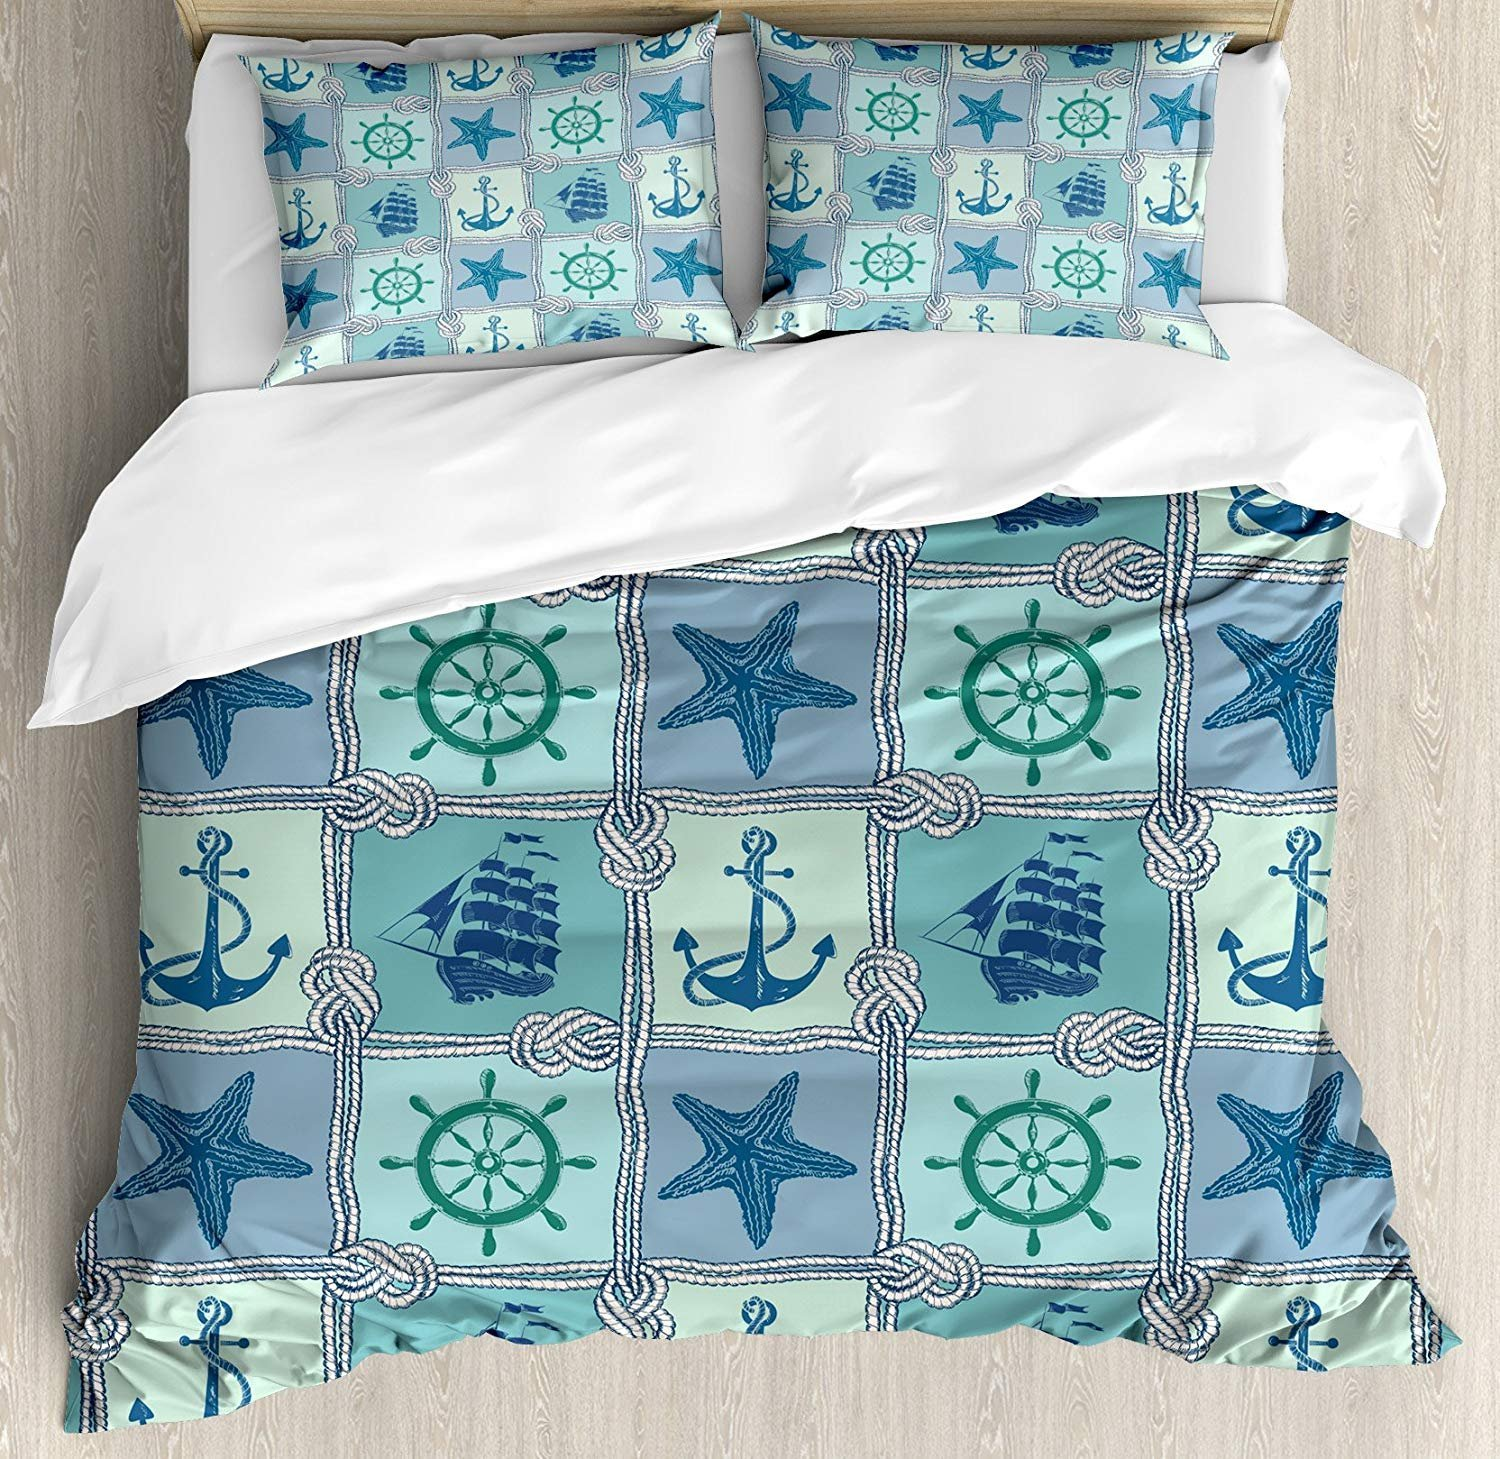 Infinidesign Ships Wheel Lightweight Microfiber Duvet Cover Set Twin Size, Nautical Patchwork Pattern with Rope Starfish Sailing Ship Anchor and Wheel, 4 Piece Bedding Set, Turquoise Navy